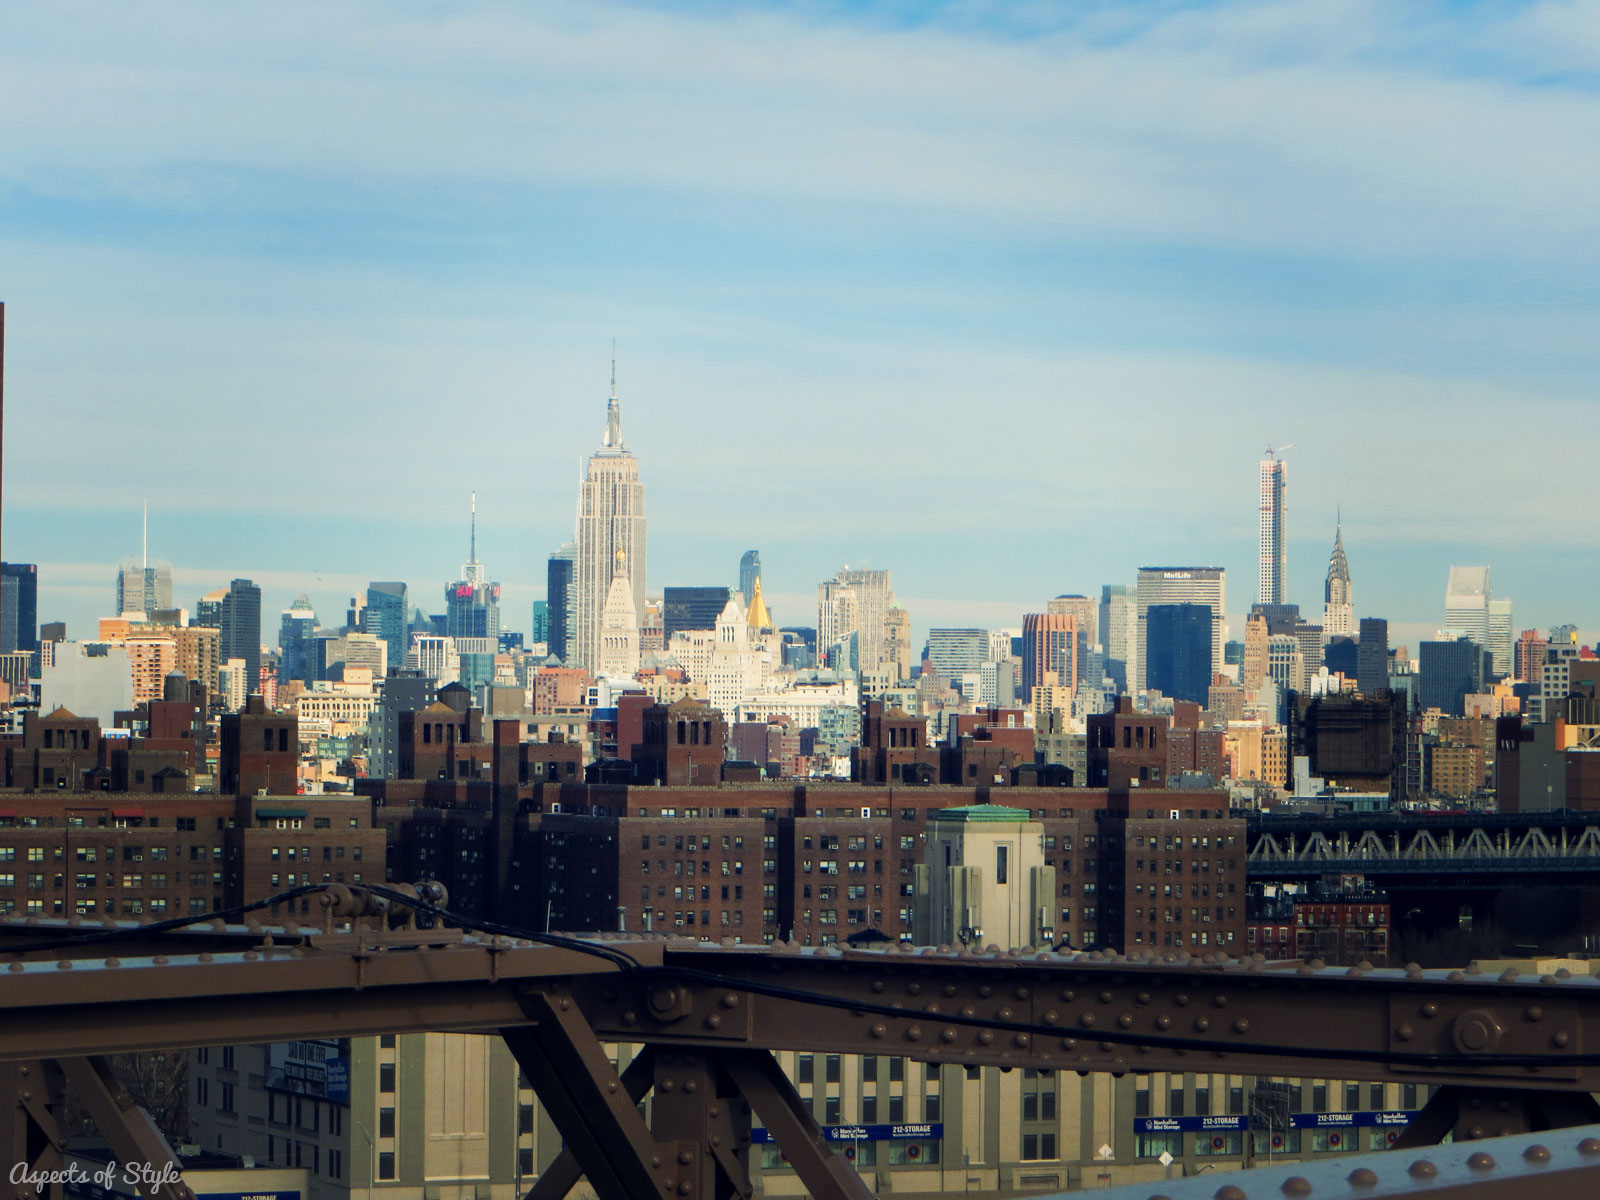 View from Brooklyn Bridge: the Empire State Building